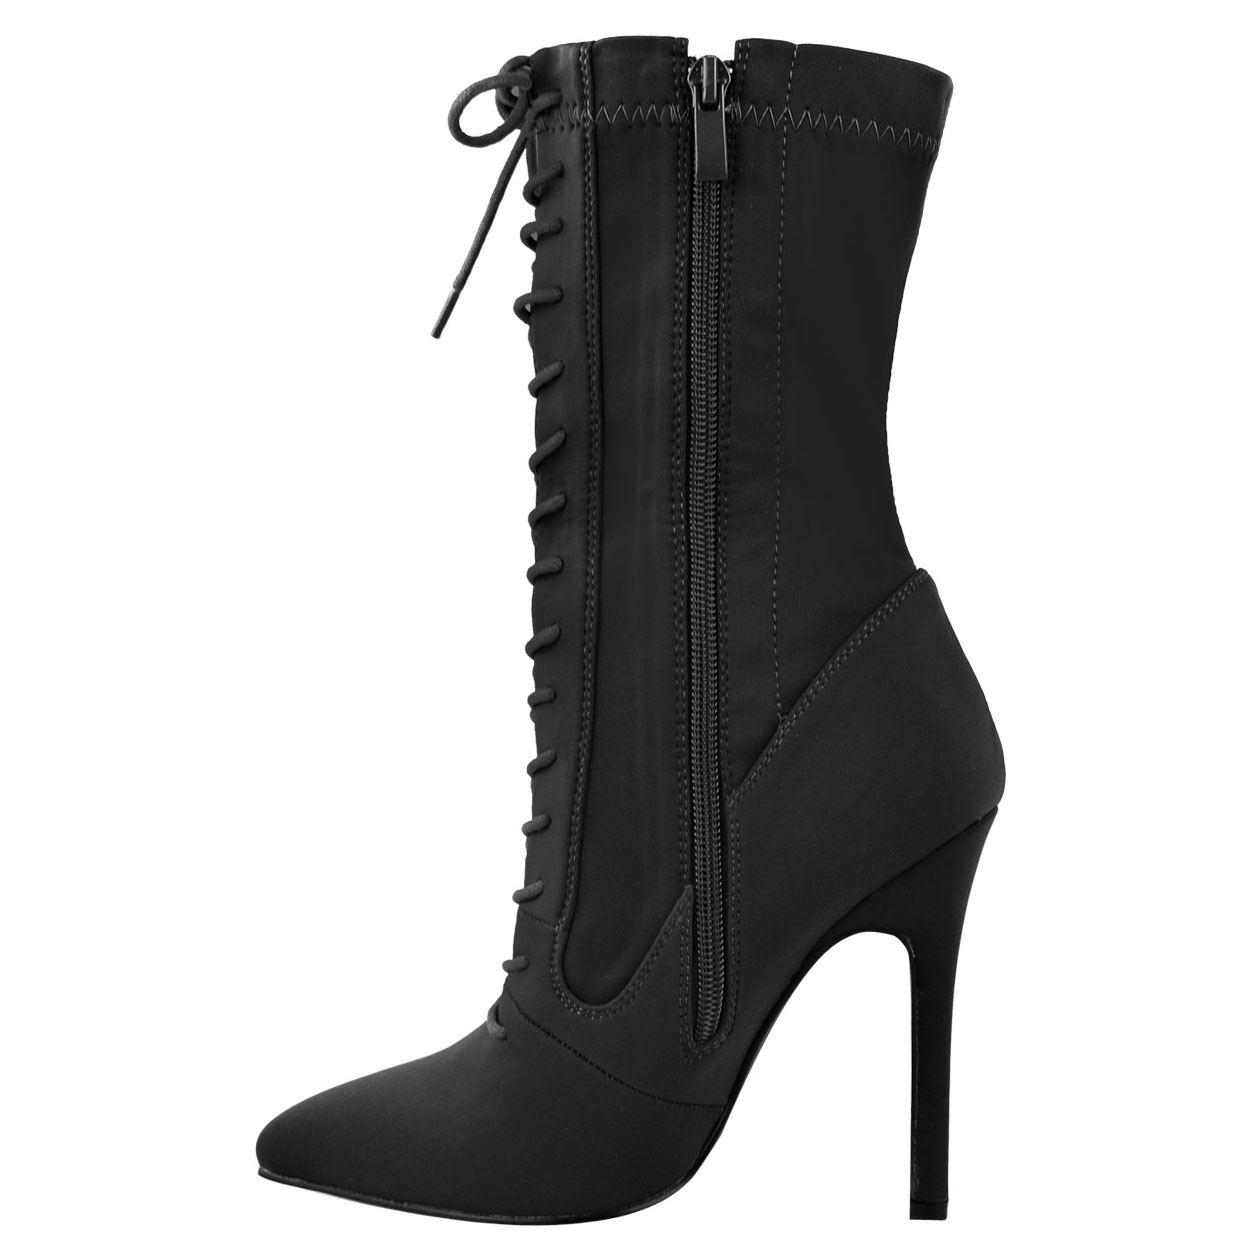 WOMENS-LADIES-HIGH-STILETTO-HEELED-LACE-ZIP-UP-POINTED-TOE-SOCK-BOOTS-SHOES-SIZE